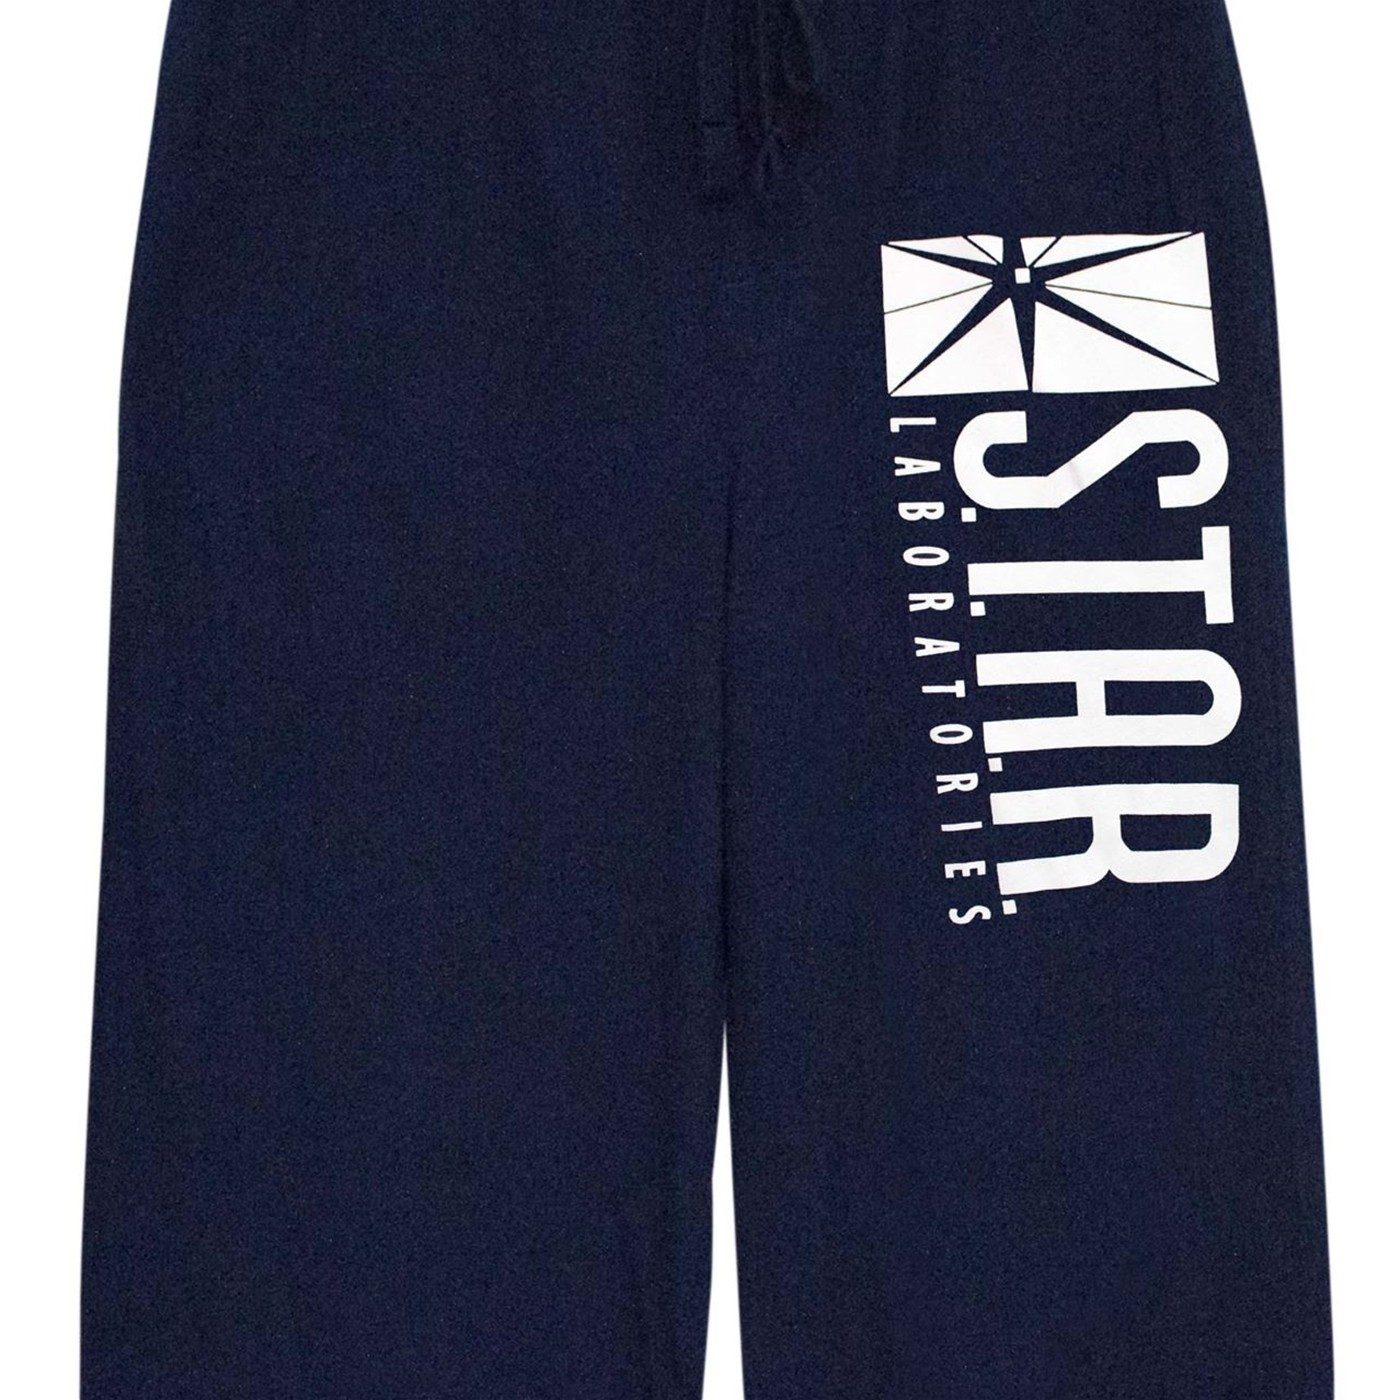 STAR Labs Navy Unisex Sleep Pants